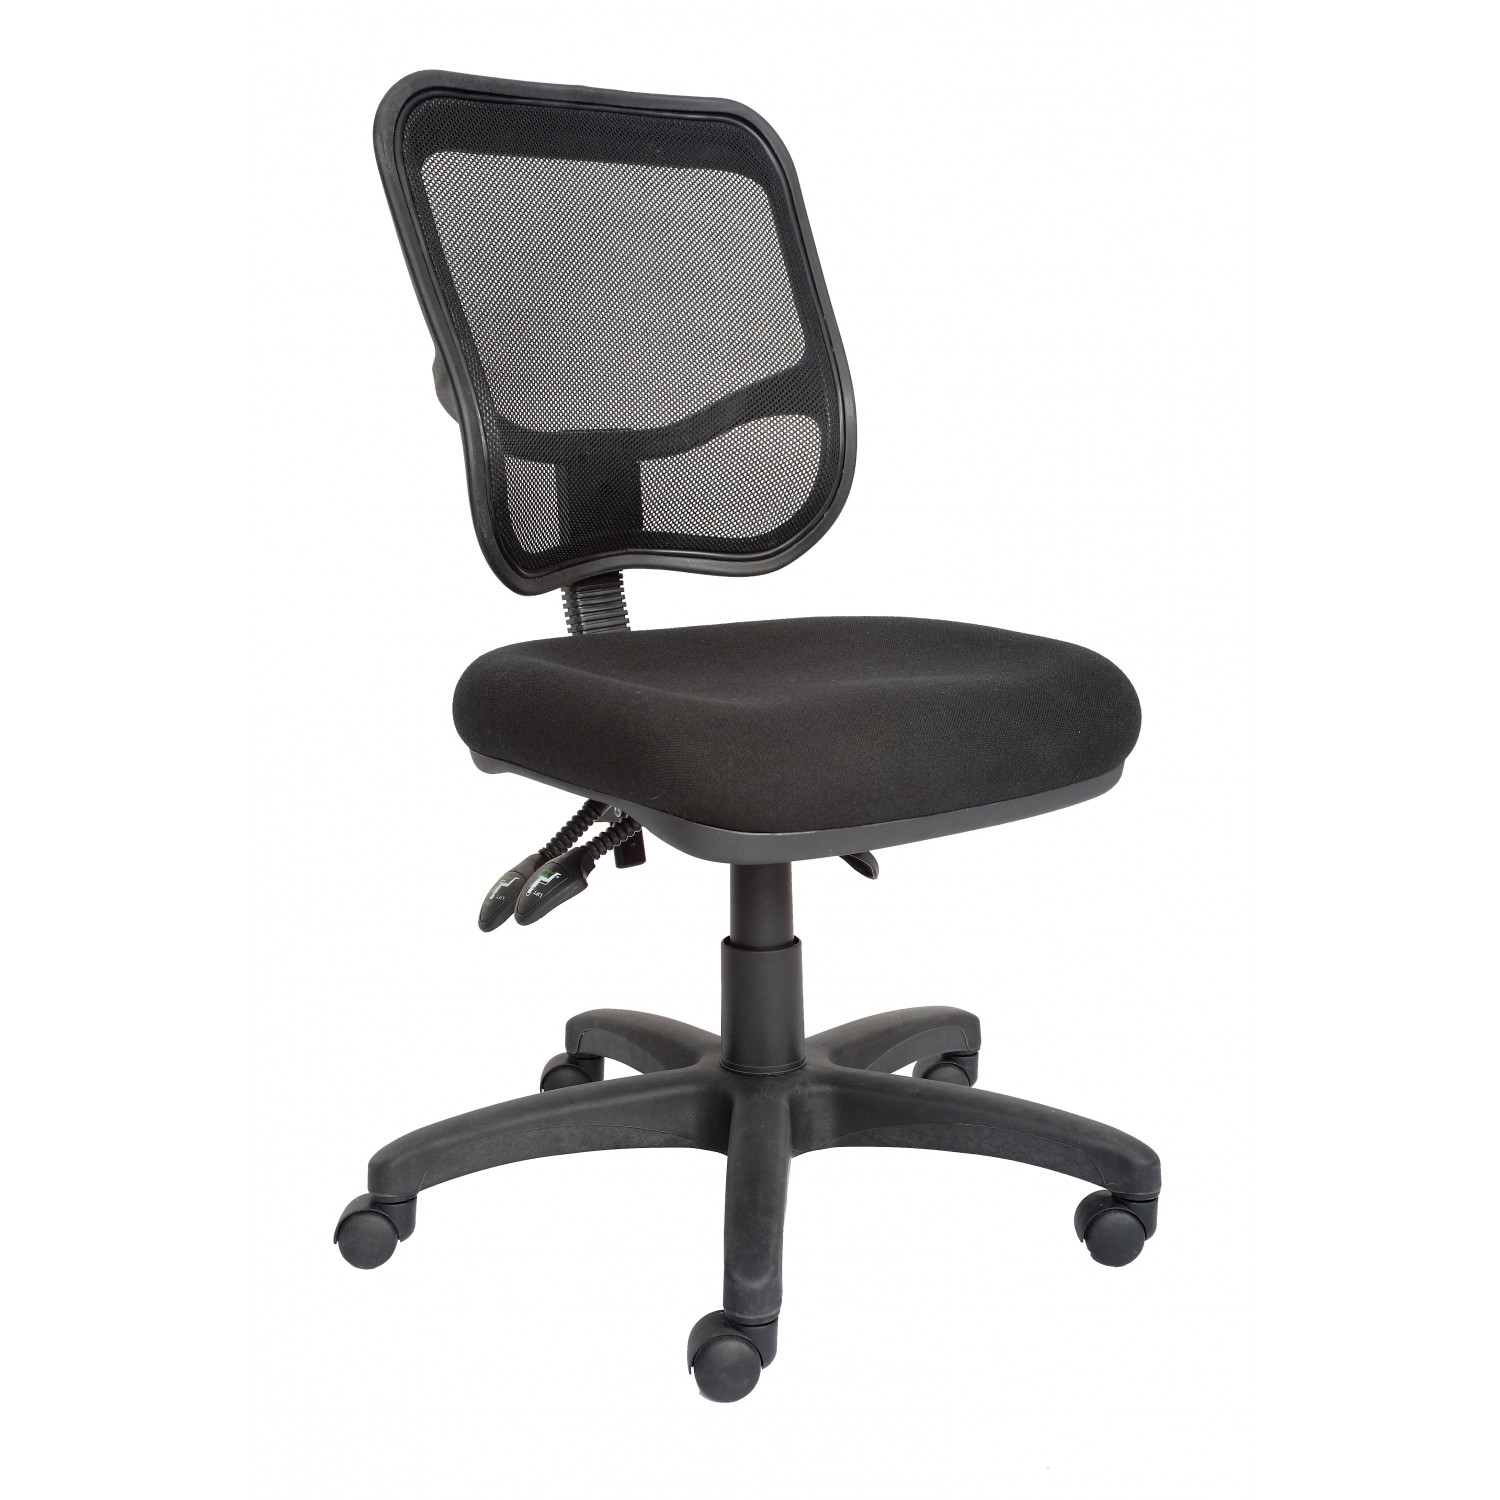 Mesh Ergonomic Office Chair Ergonomic Mesh Chair Em300c Office Furniture Since 1990